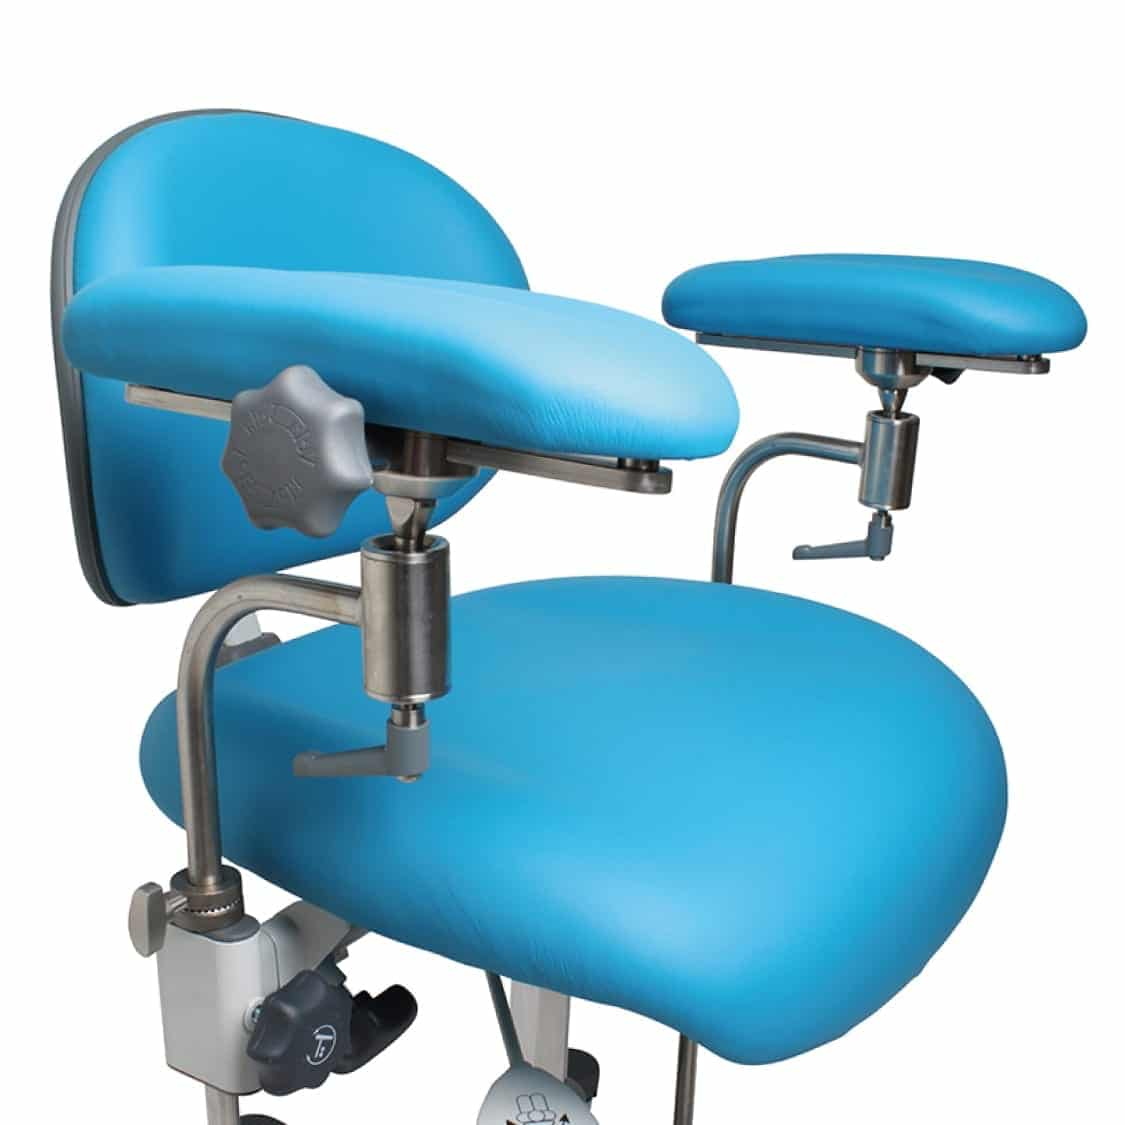 nhs posture chair wheelchair glee jive surgical armrest agile medical